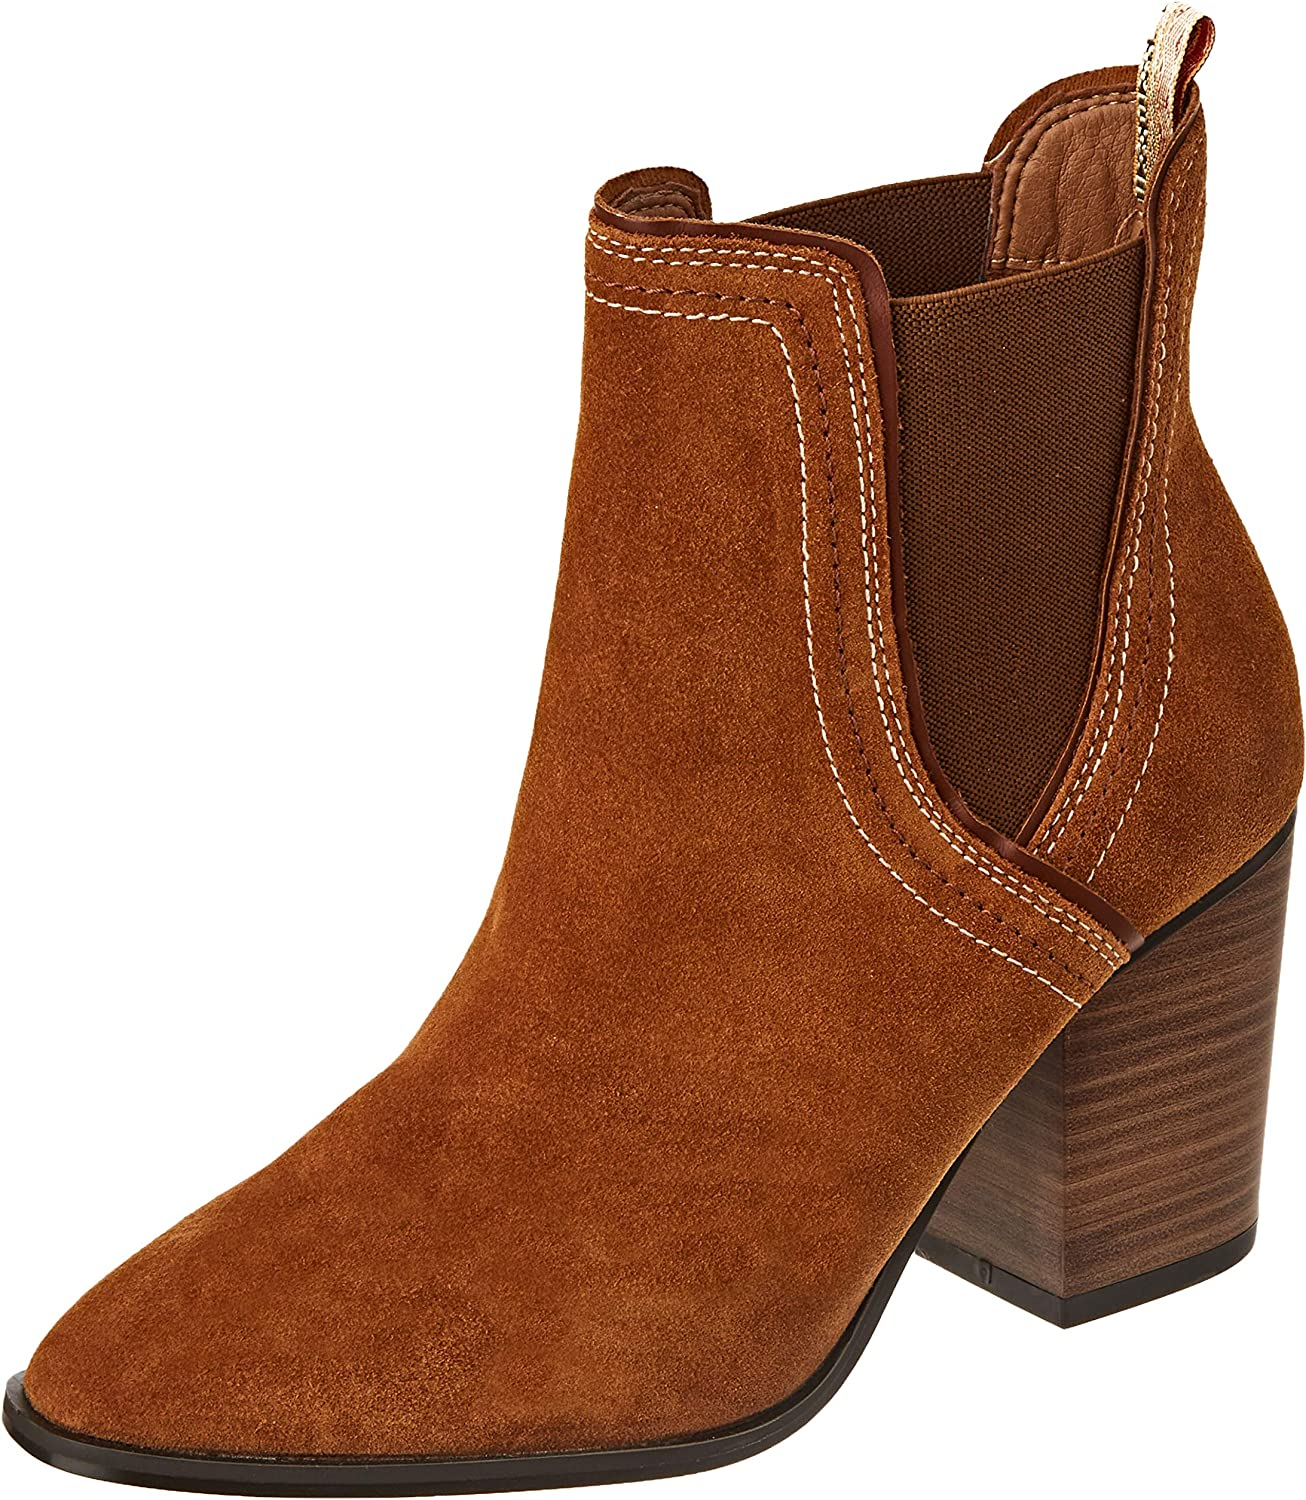 Tamaris Finally popular brand Women's Bootie Ankle 6.5 us In a popularity Boot